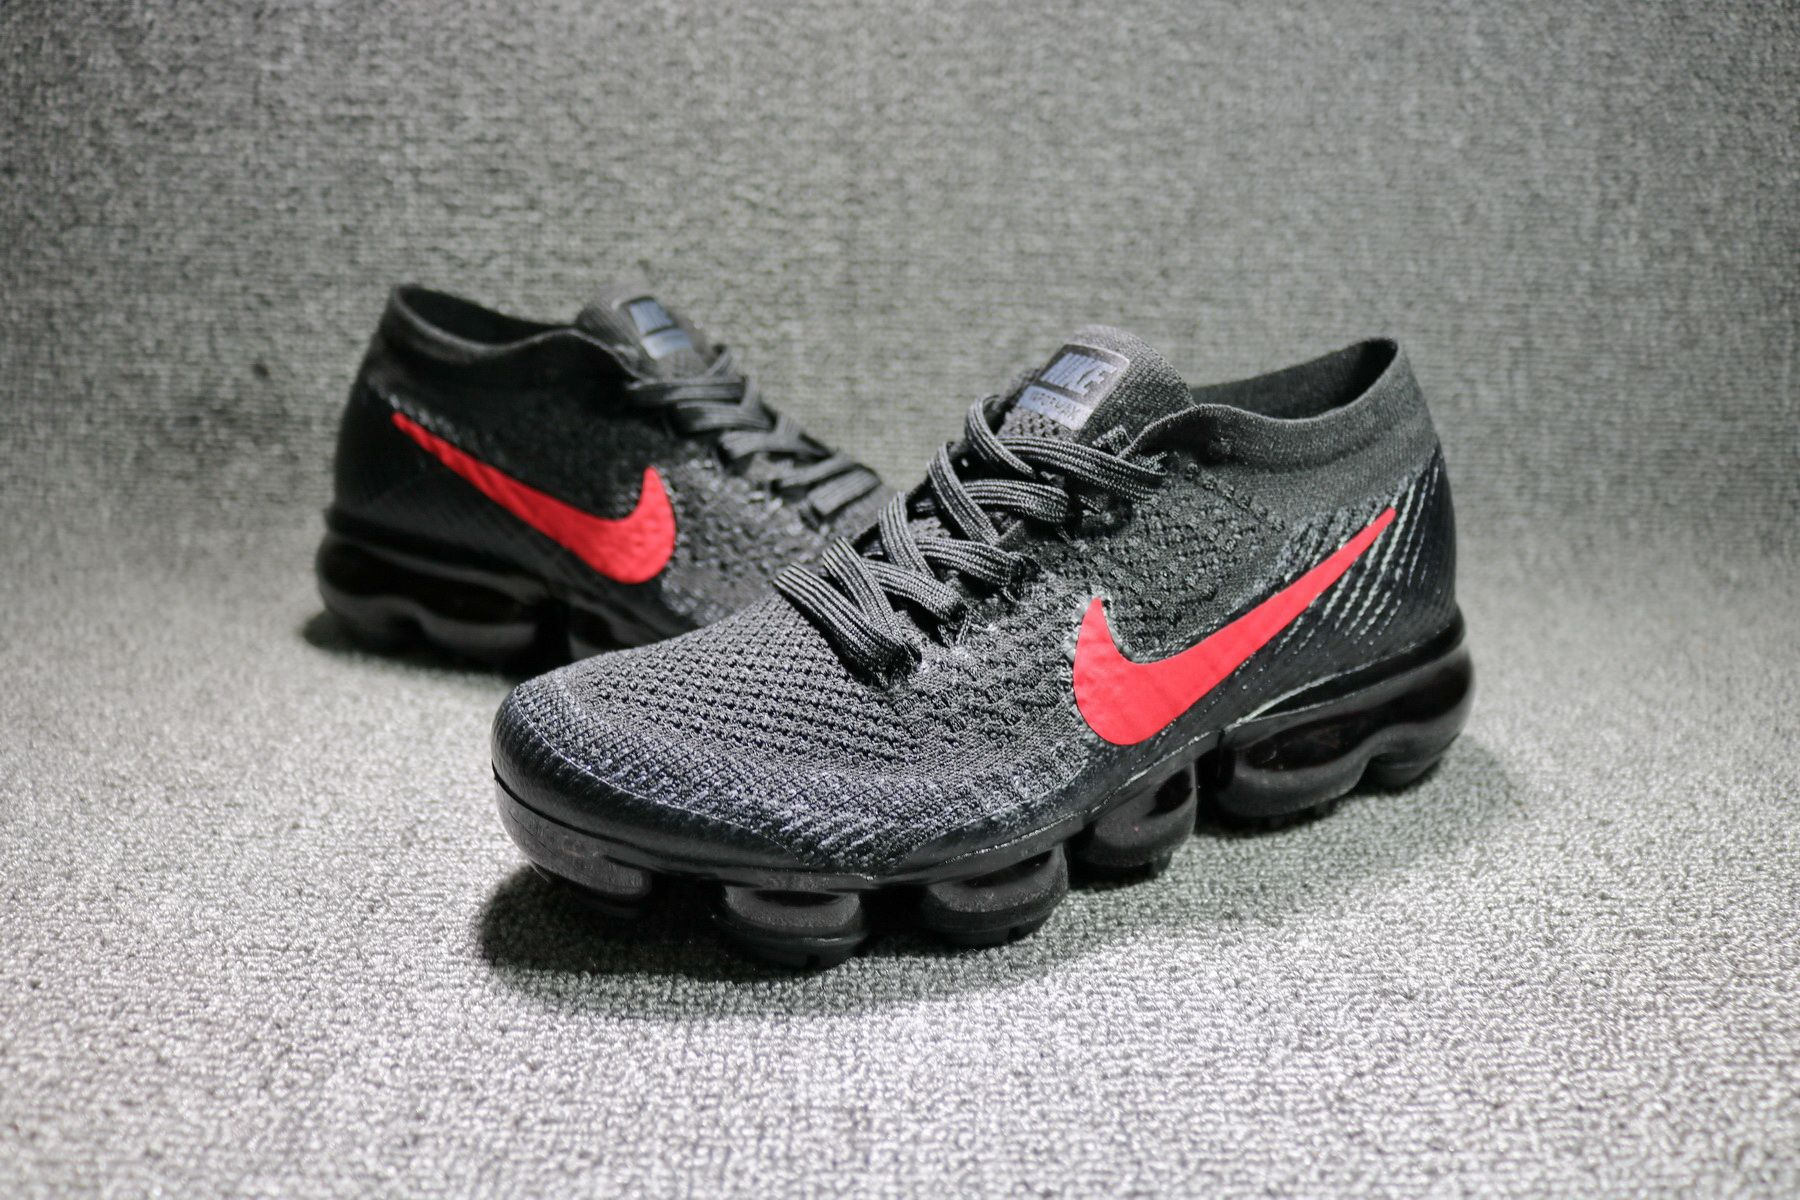 premium selection 0684f 4562a NIKE AIR VAPORMAX FLYKNIT RUNNING BLACK RED 849557 007